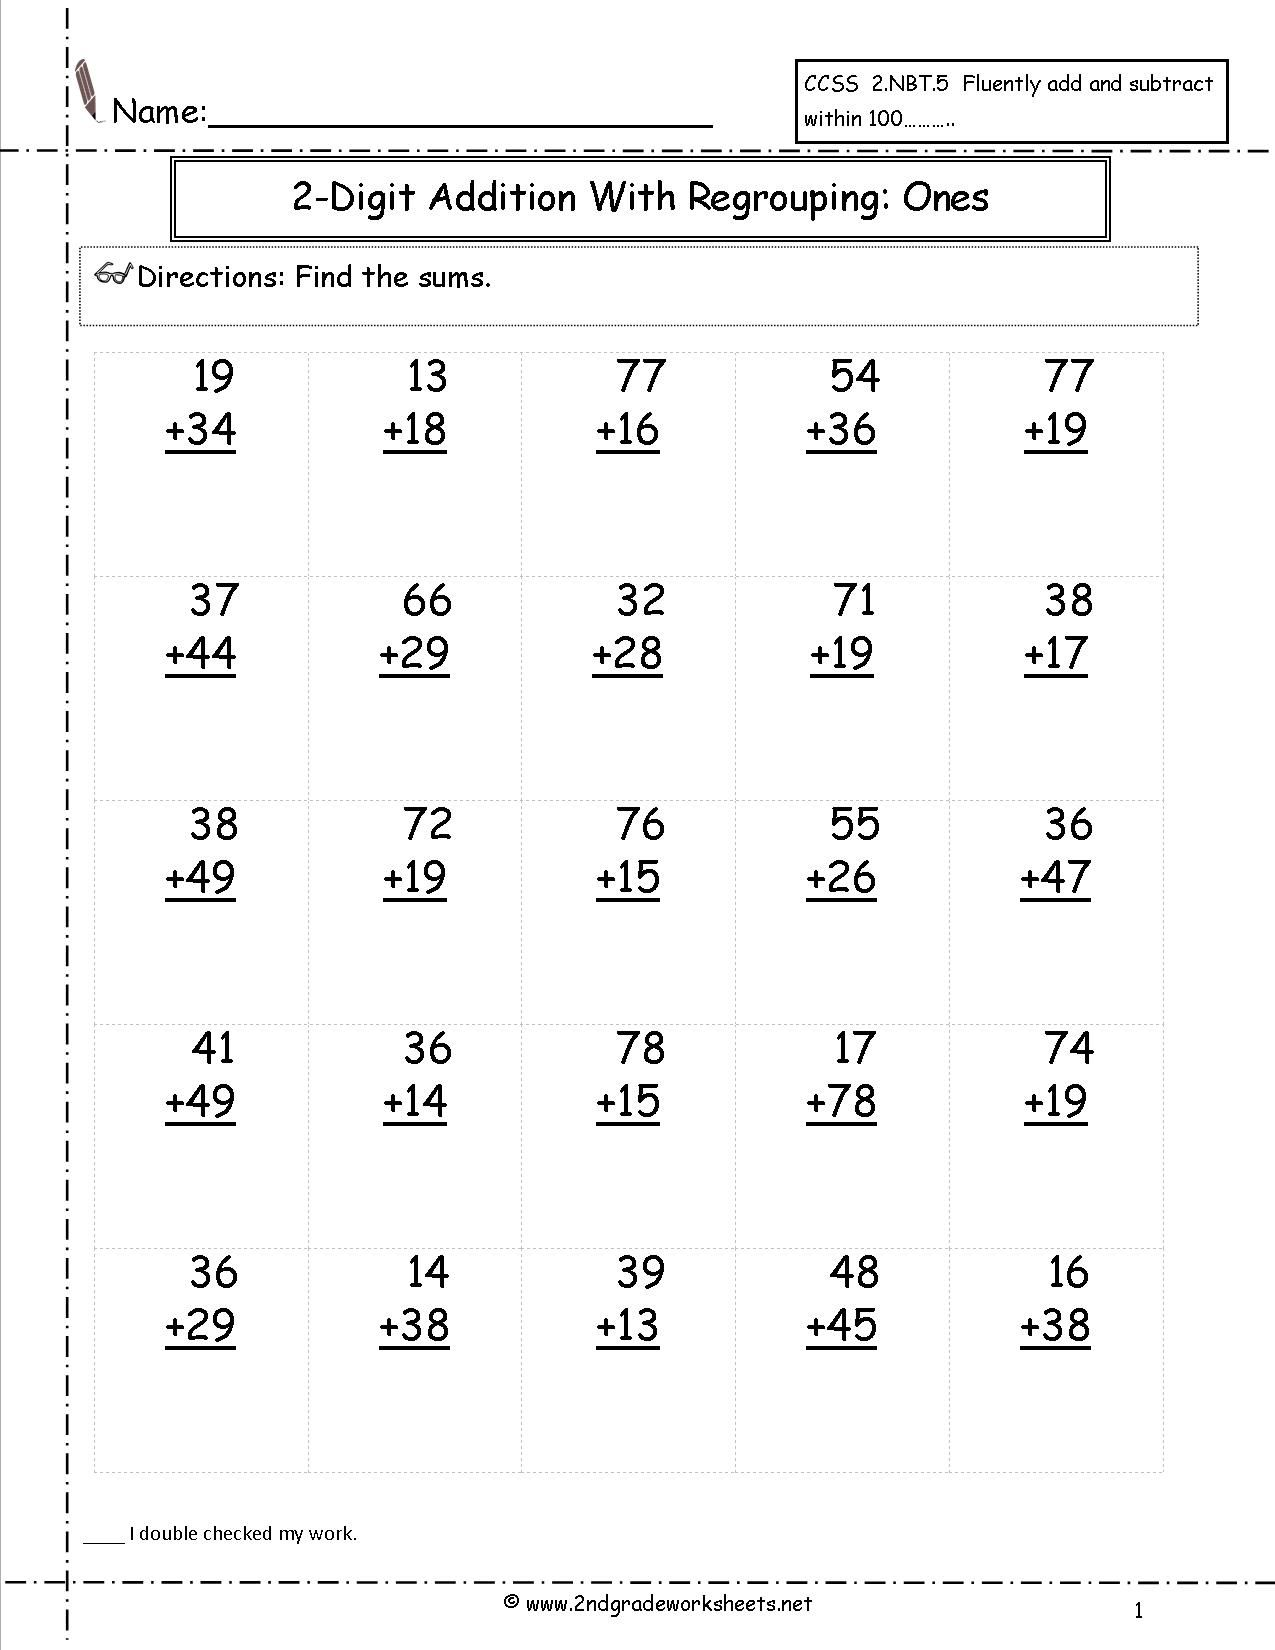 Grade 2 Maths Worksheets Printable First Grade Math Worksheets Subtraction 6 First First Grade Math Worksheets 2nd Grade Math Worksheets 2nd Grade Worksheets